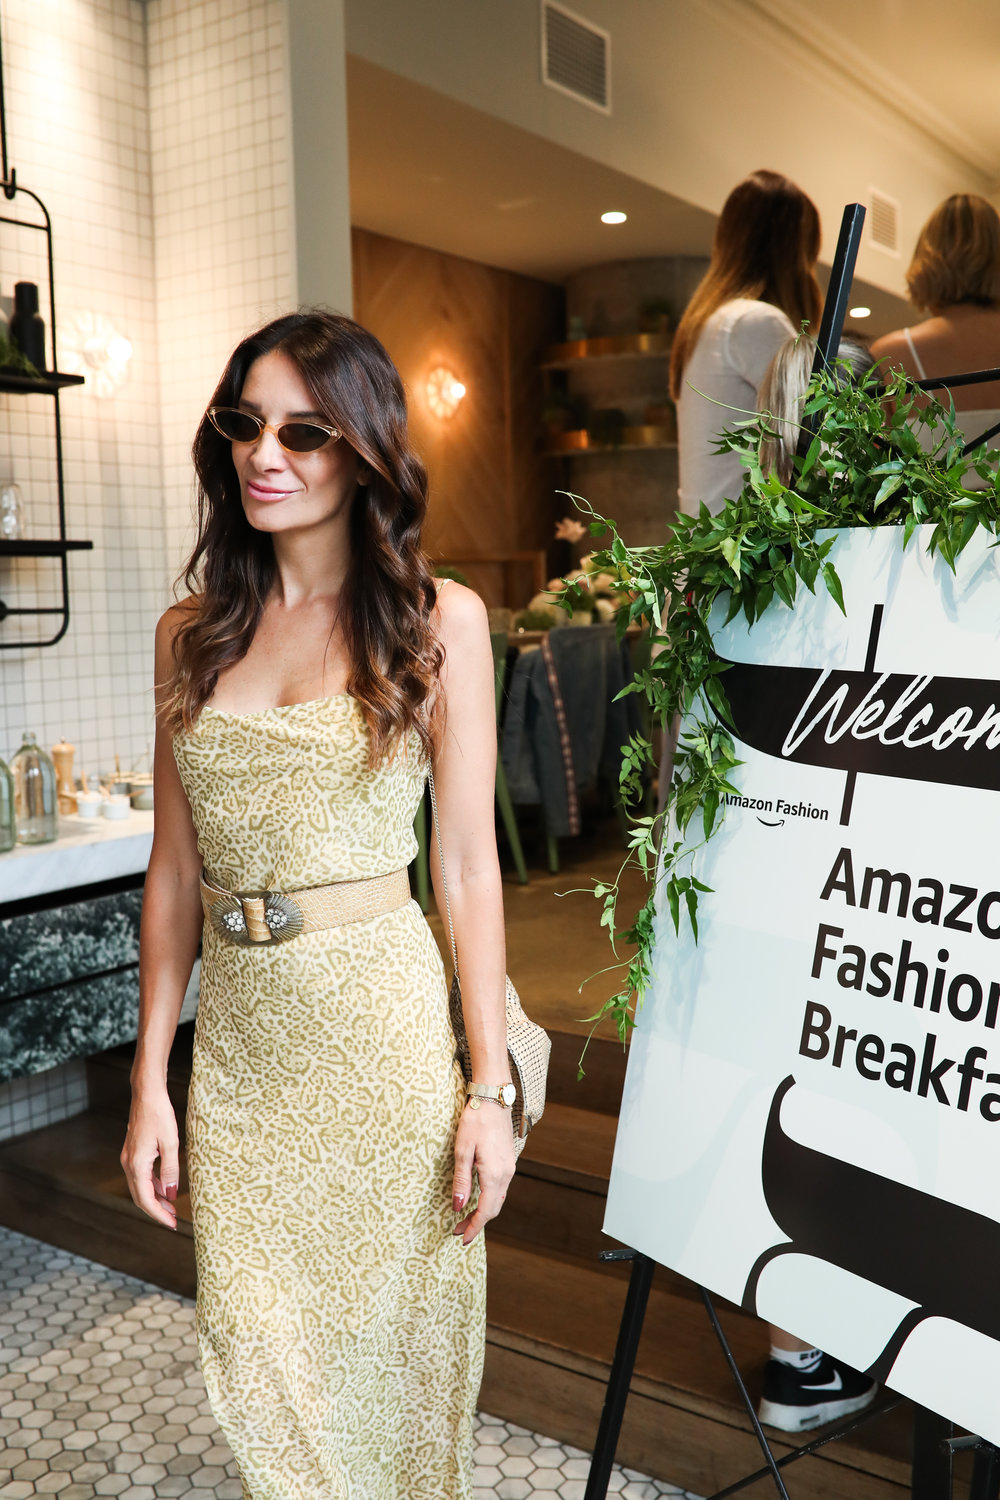 Amazon Fashion HI res 74.jpg